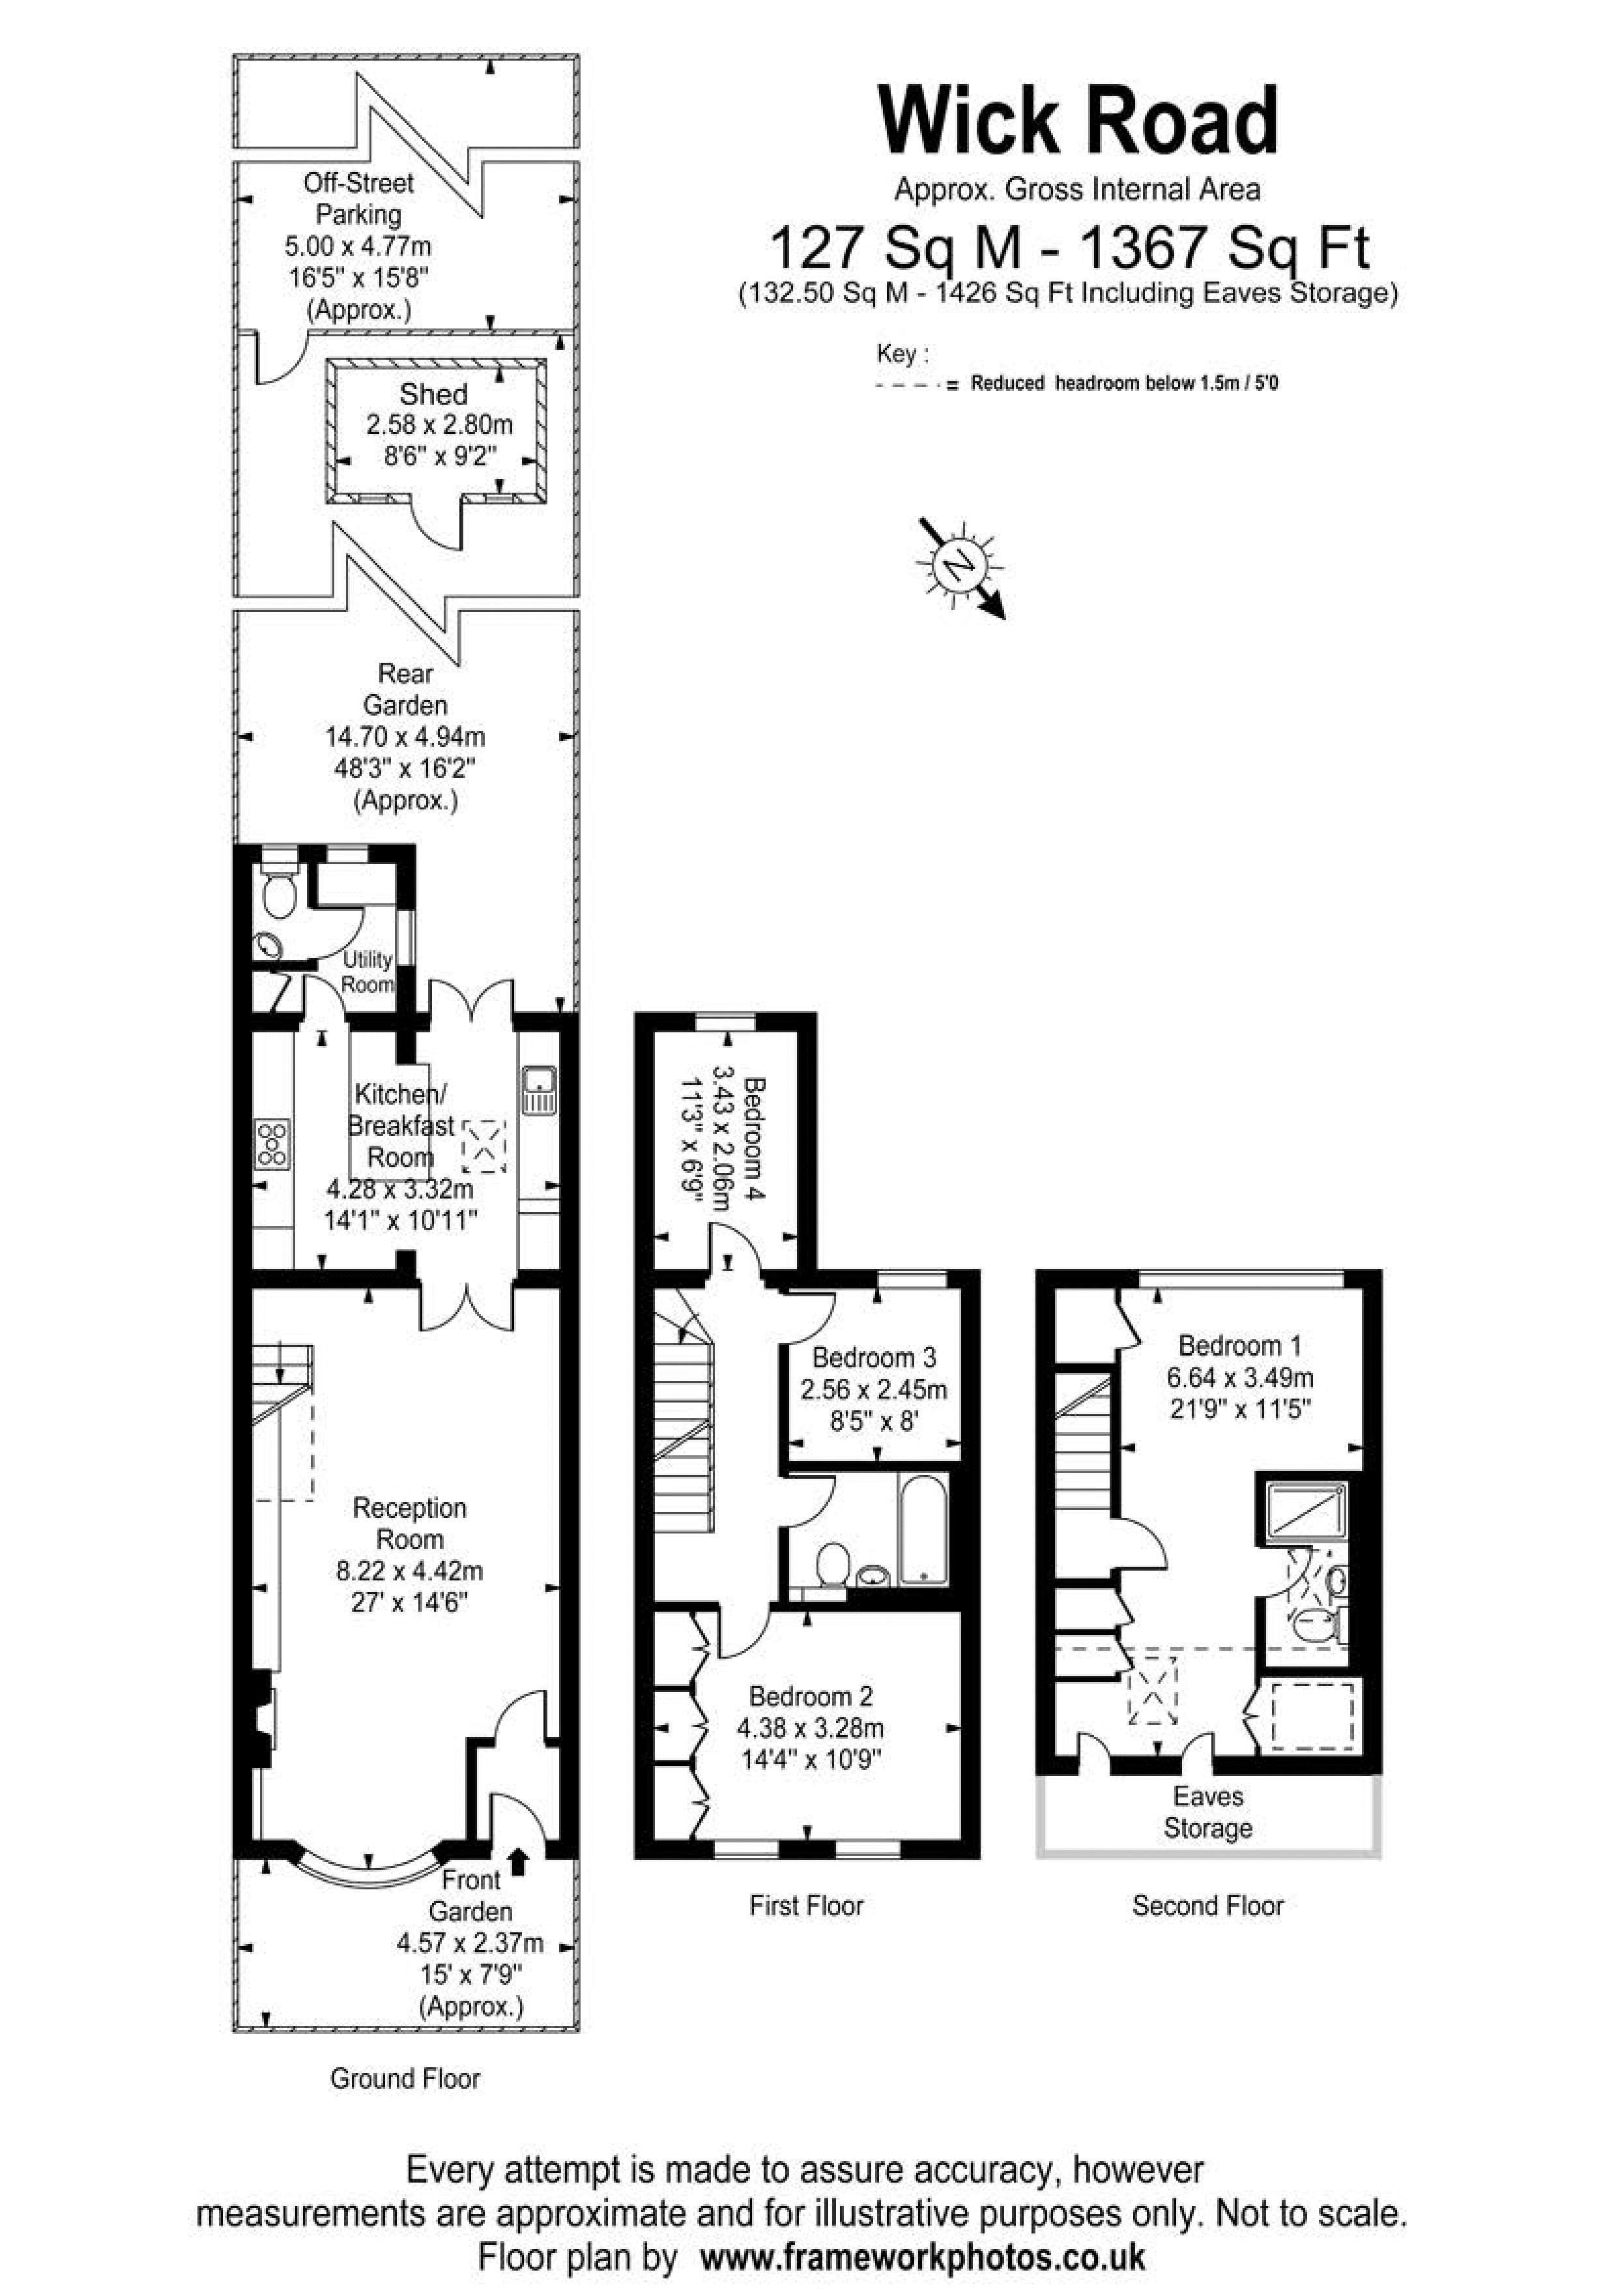 Floorplans For Wick Road, Teddington